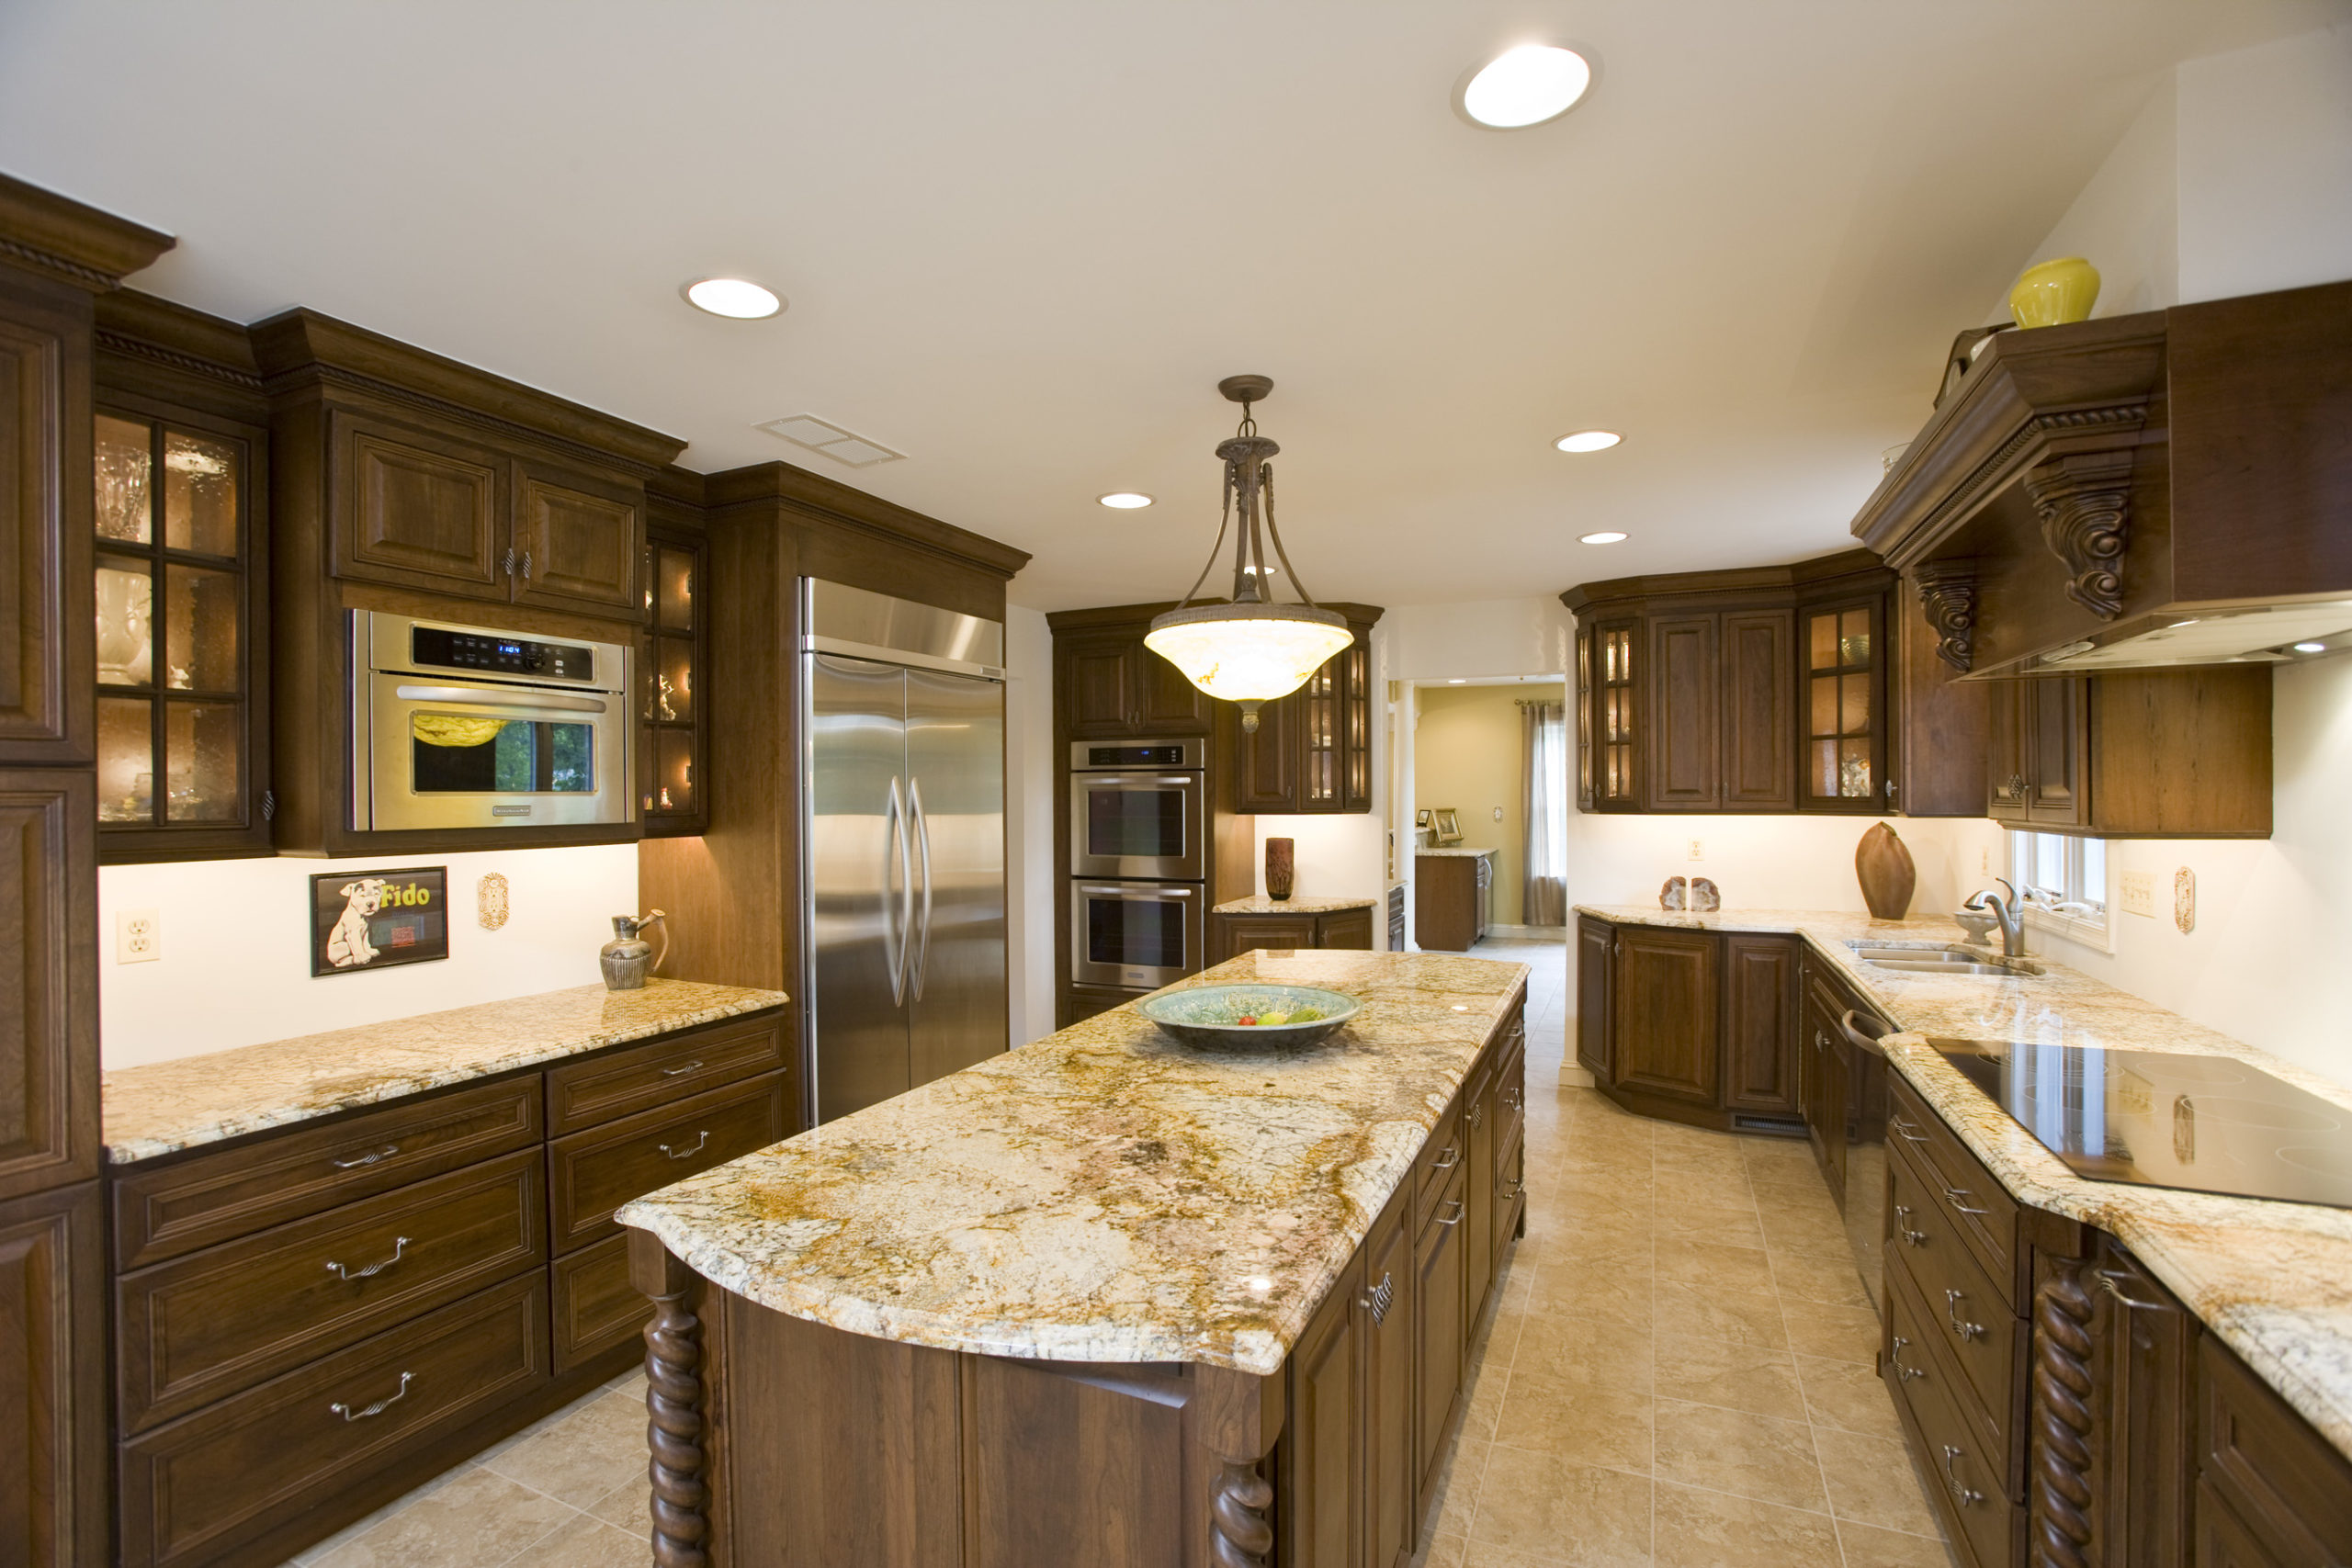 Home Depot Cambria Quartz Countertops An Unbiased Review And Cost Guide